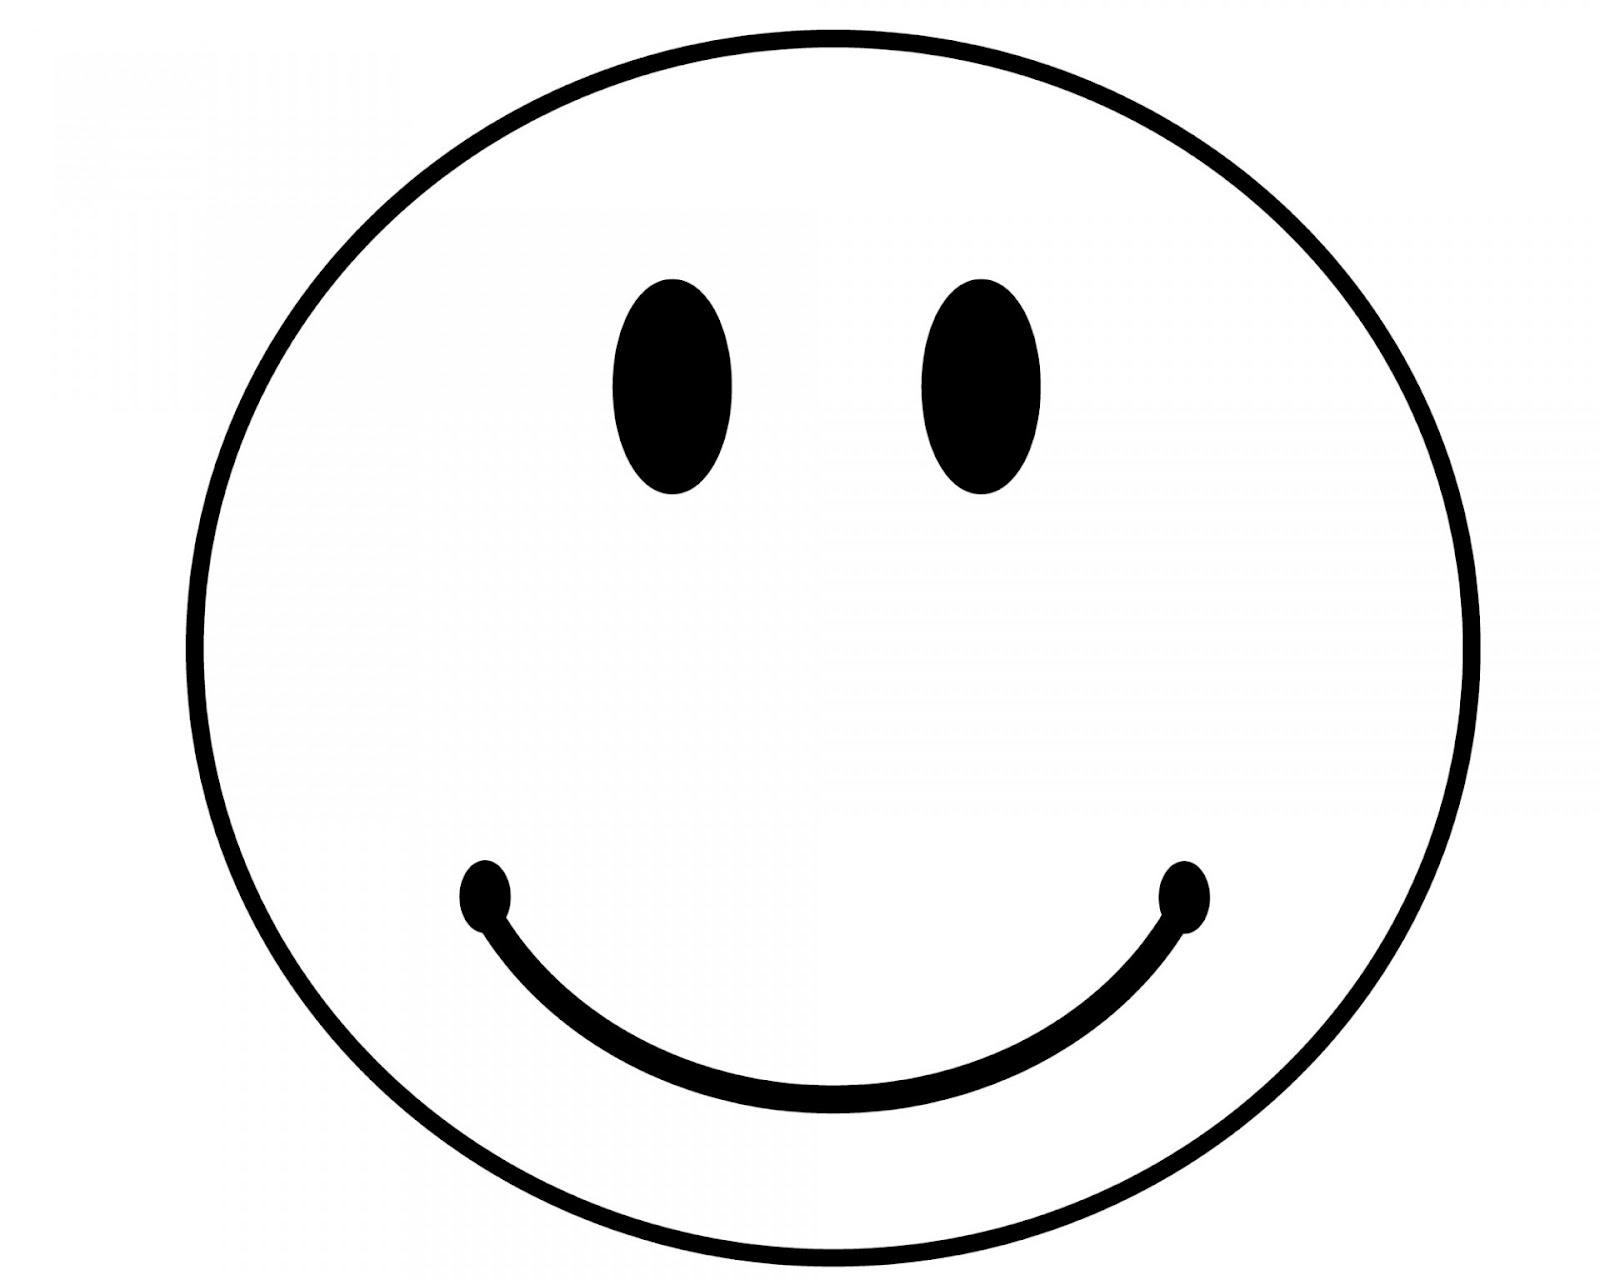 Smiley Face Images - Public Domain Pictures - Page 1